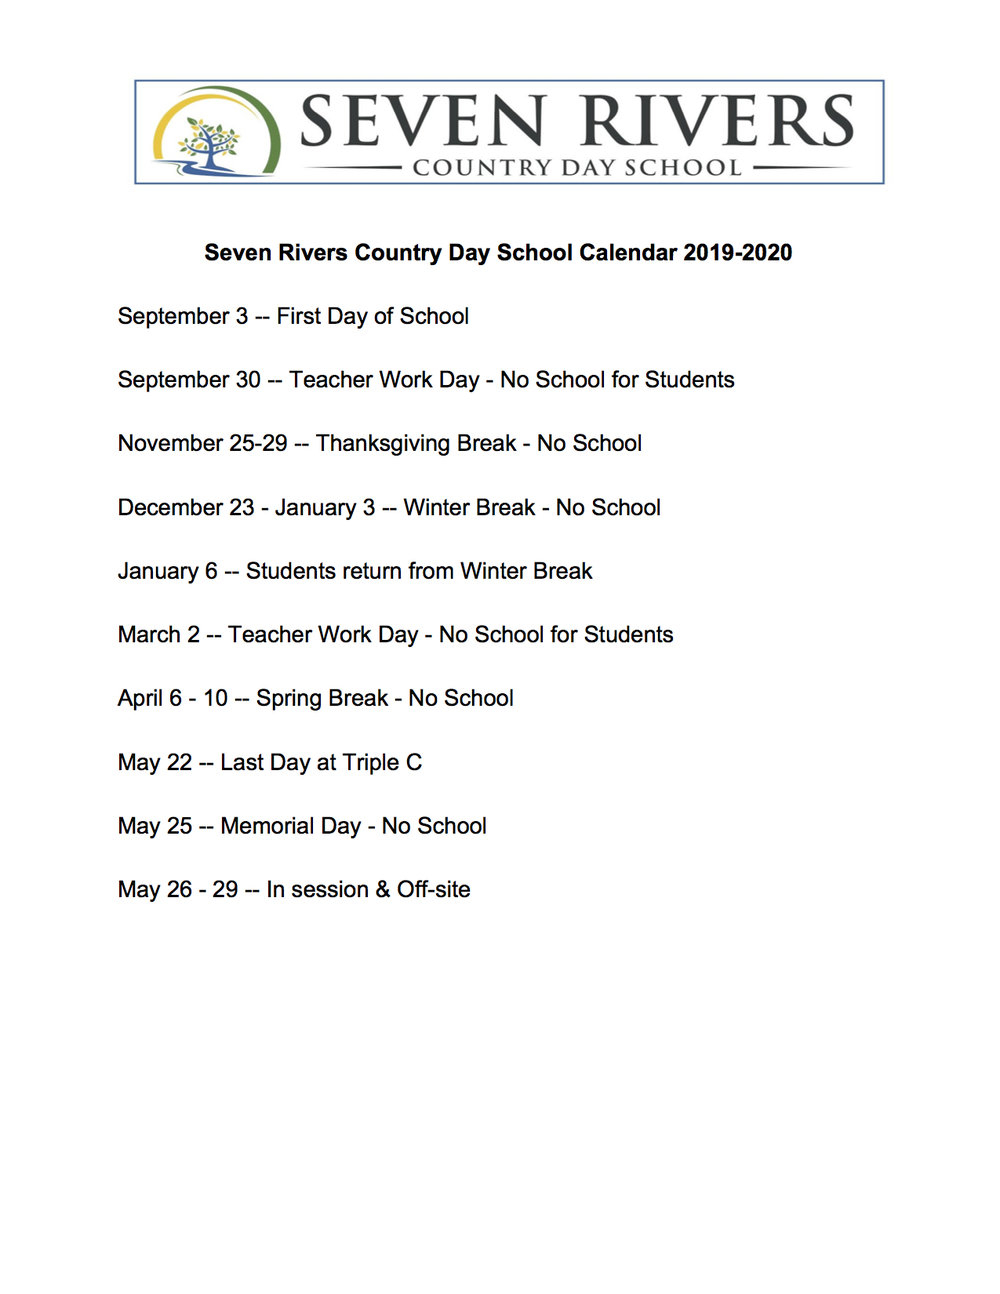 Calendar — Seven Rivers intended for Triple C School Calendar 2020